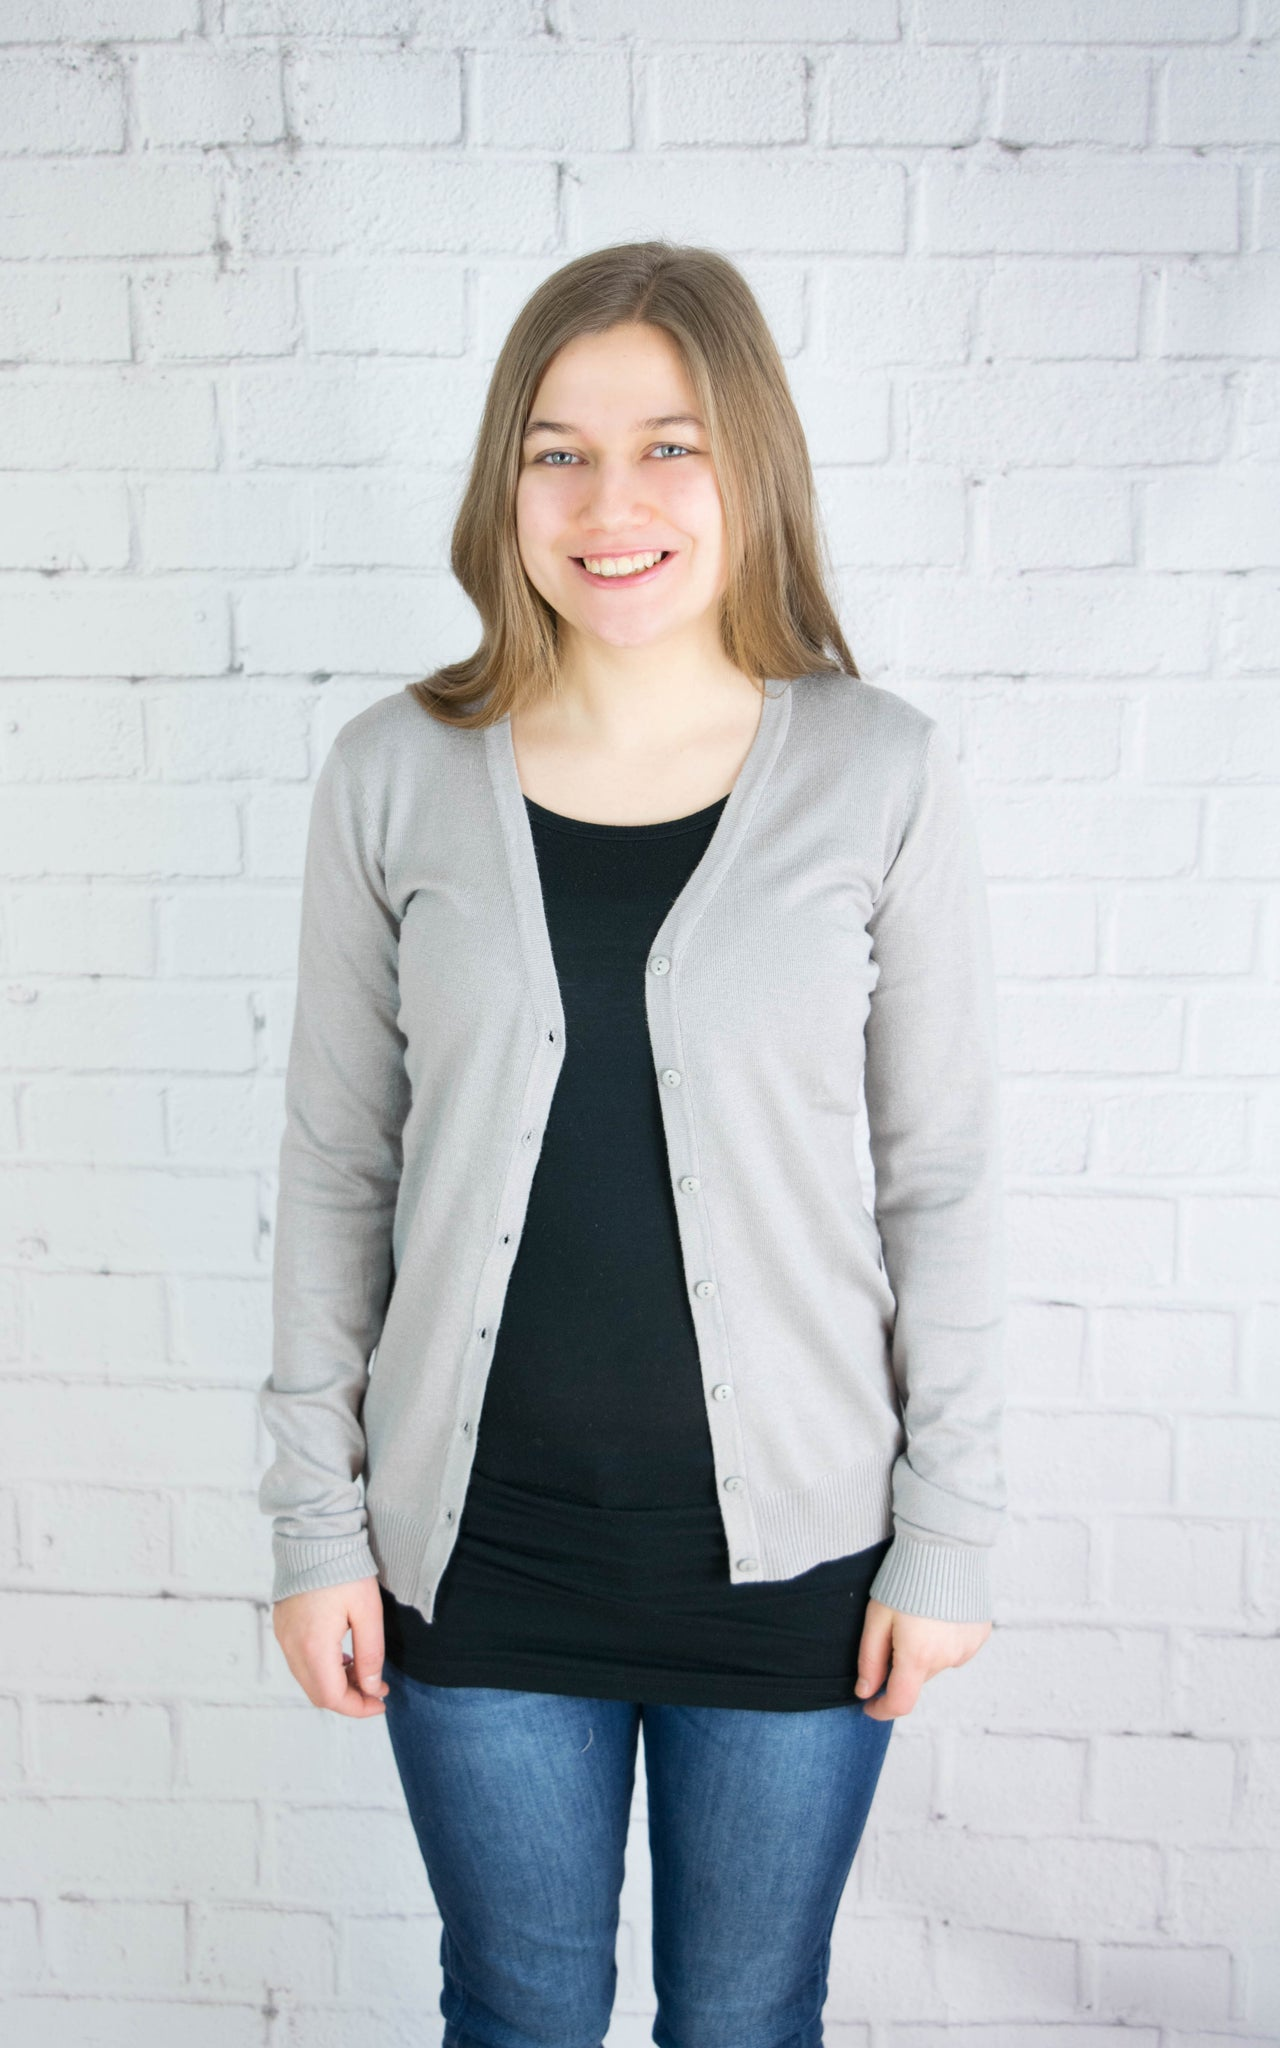 Comfy, professional, and versatile cardigan